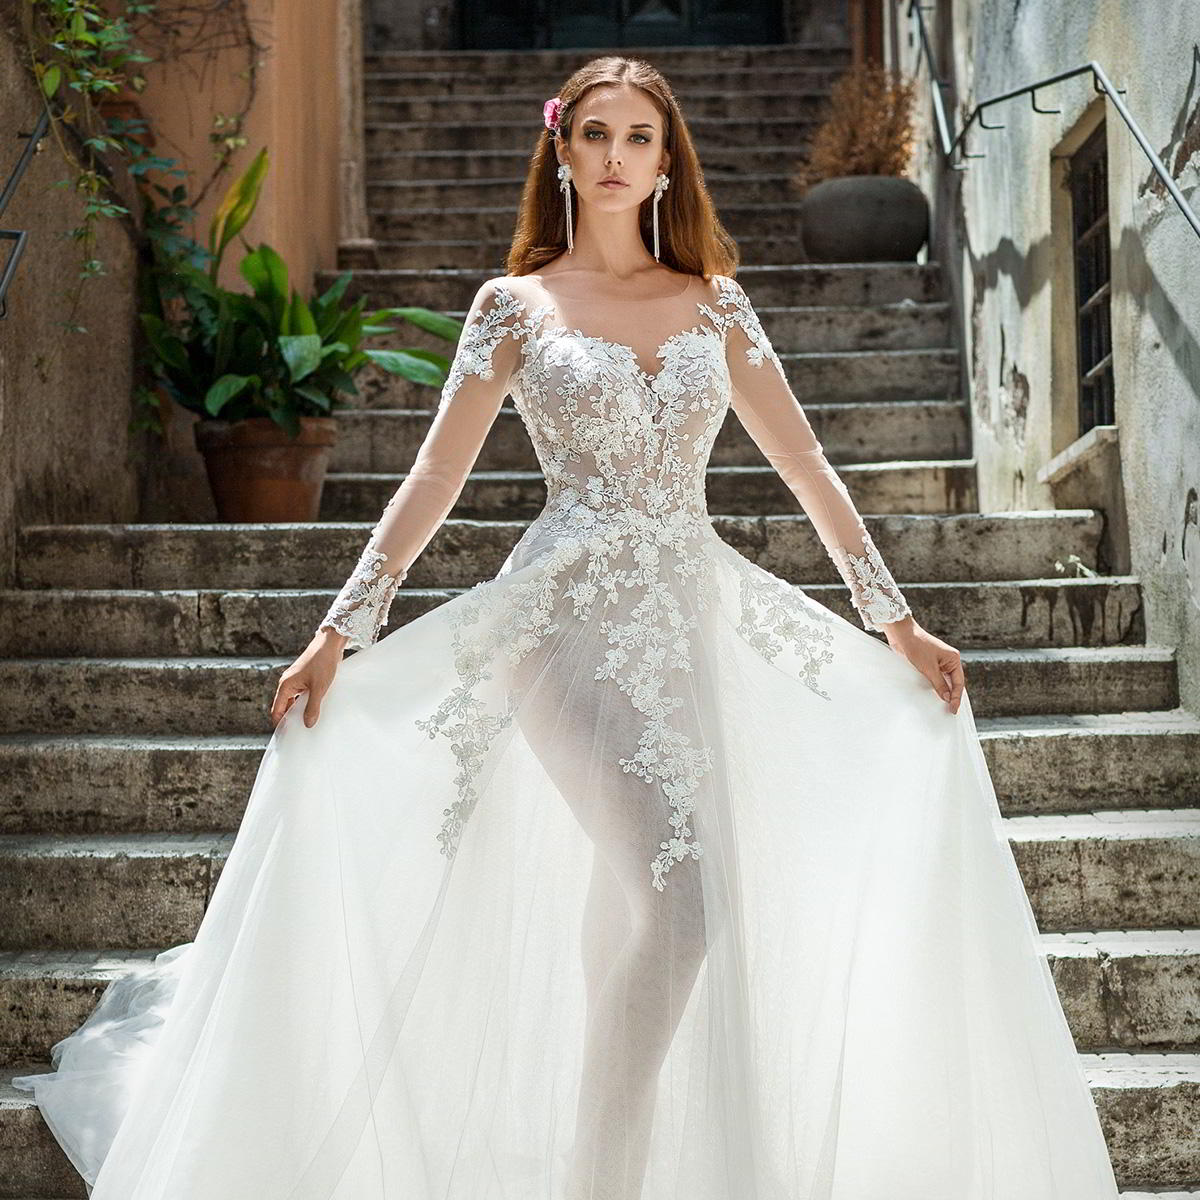 Roman Wedding Gowns: Tanya Grig 2019 Wedding Dresses